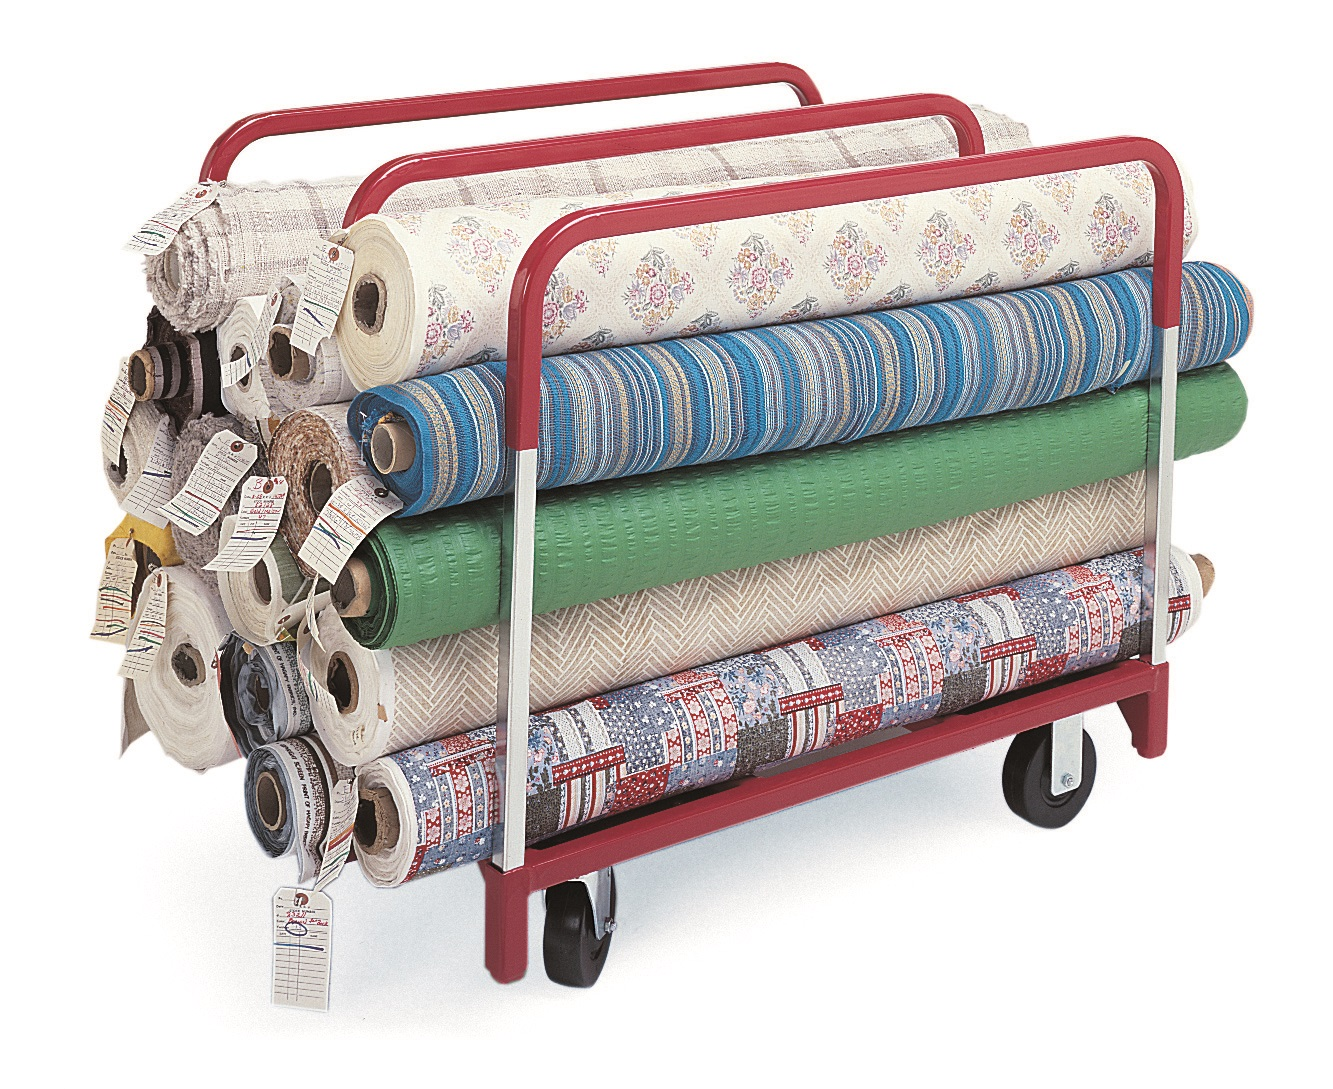 Panel Mover 3825 and Fabric